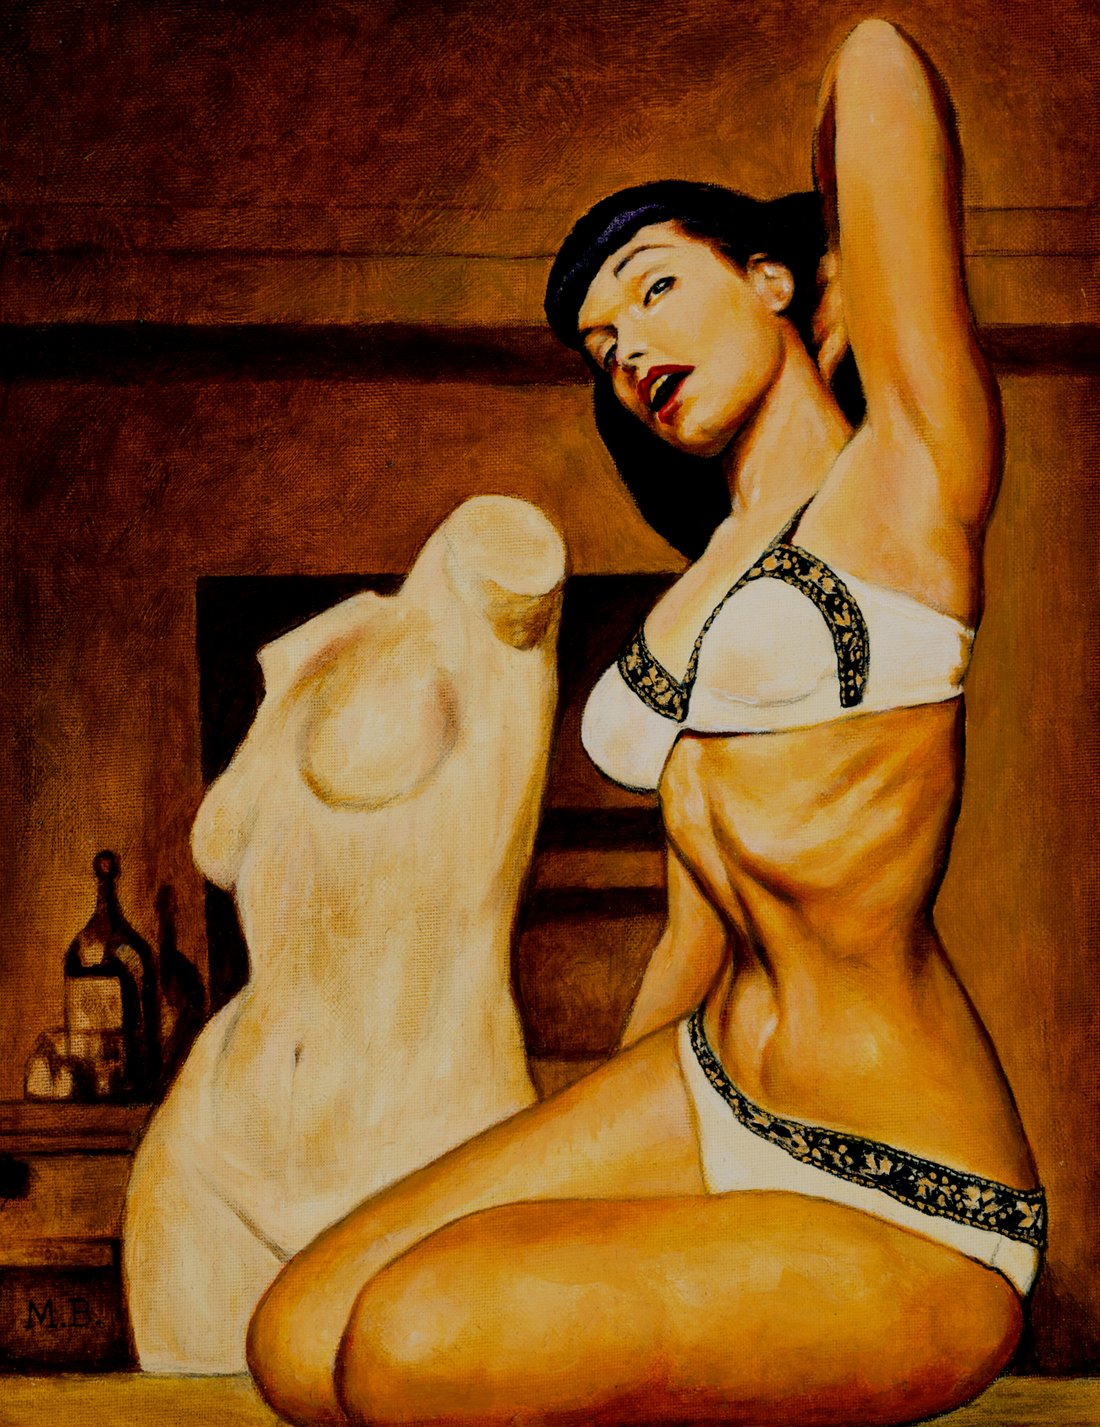 Bettie Page Large Life-Like Painting (1980s)